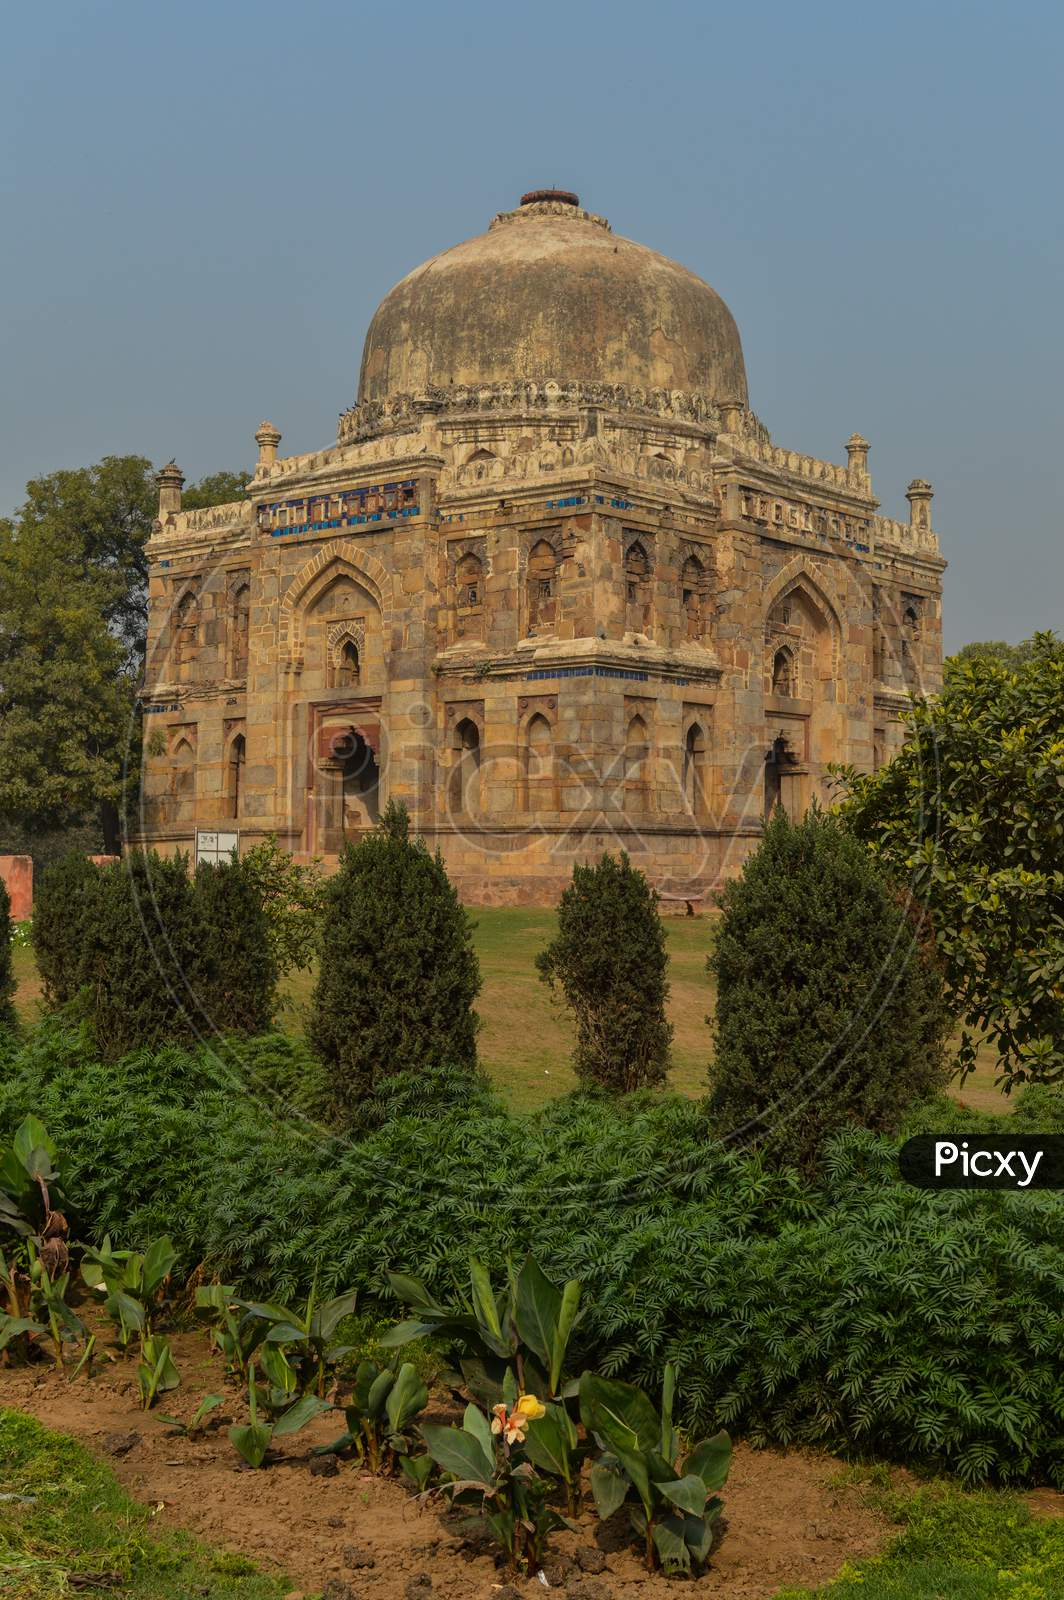 A Shish Gumbad Monument At Lodi Garden Or Lodhi Gardens In A City Park From The Side Of The Lawn At Winter Foggy Morning.